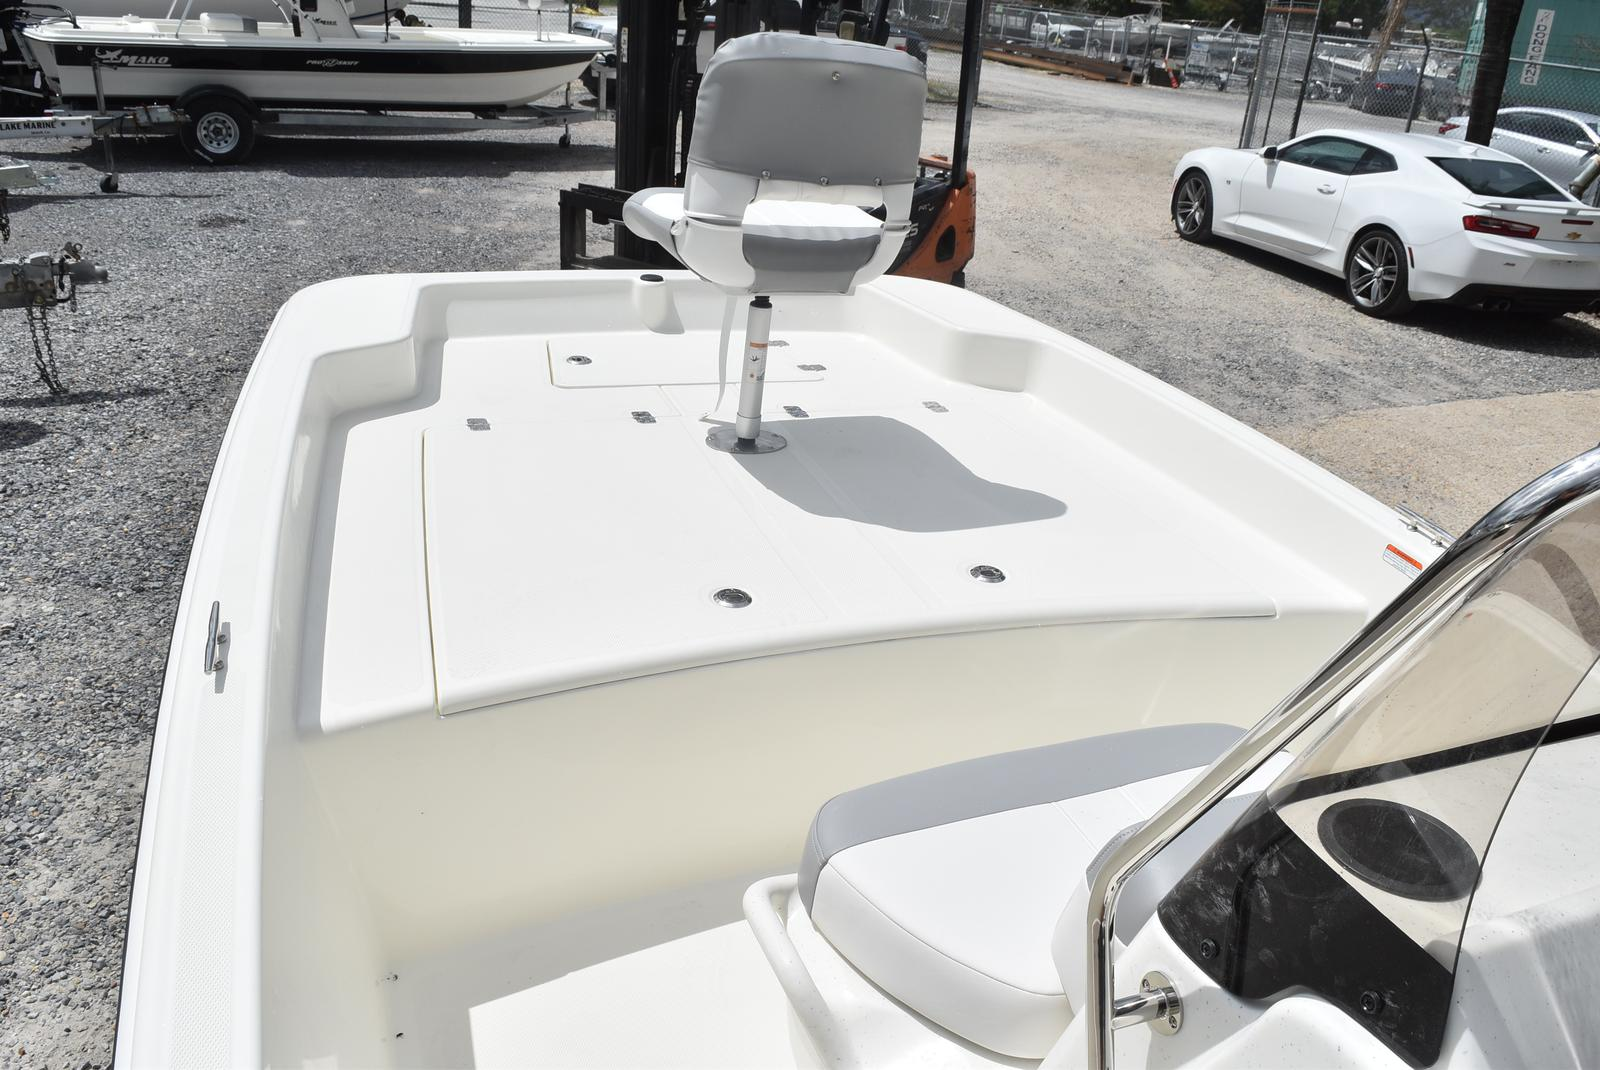 2020 Mako boat for sale, model of the boat is Pro Skiff 17, 75 ELPT & Image # 465 of 702